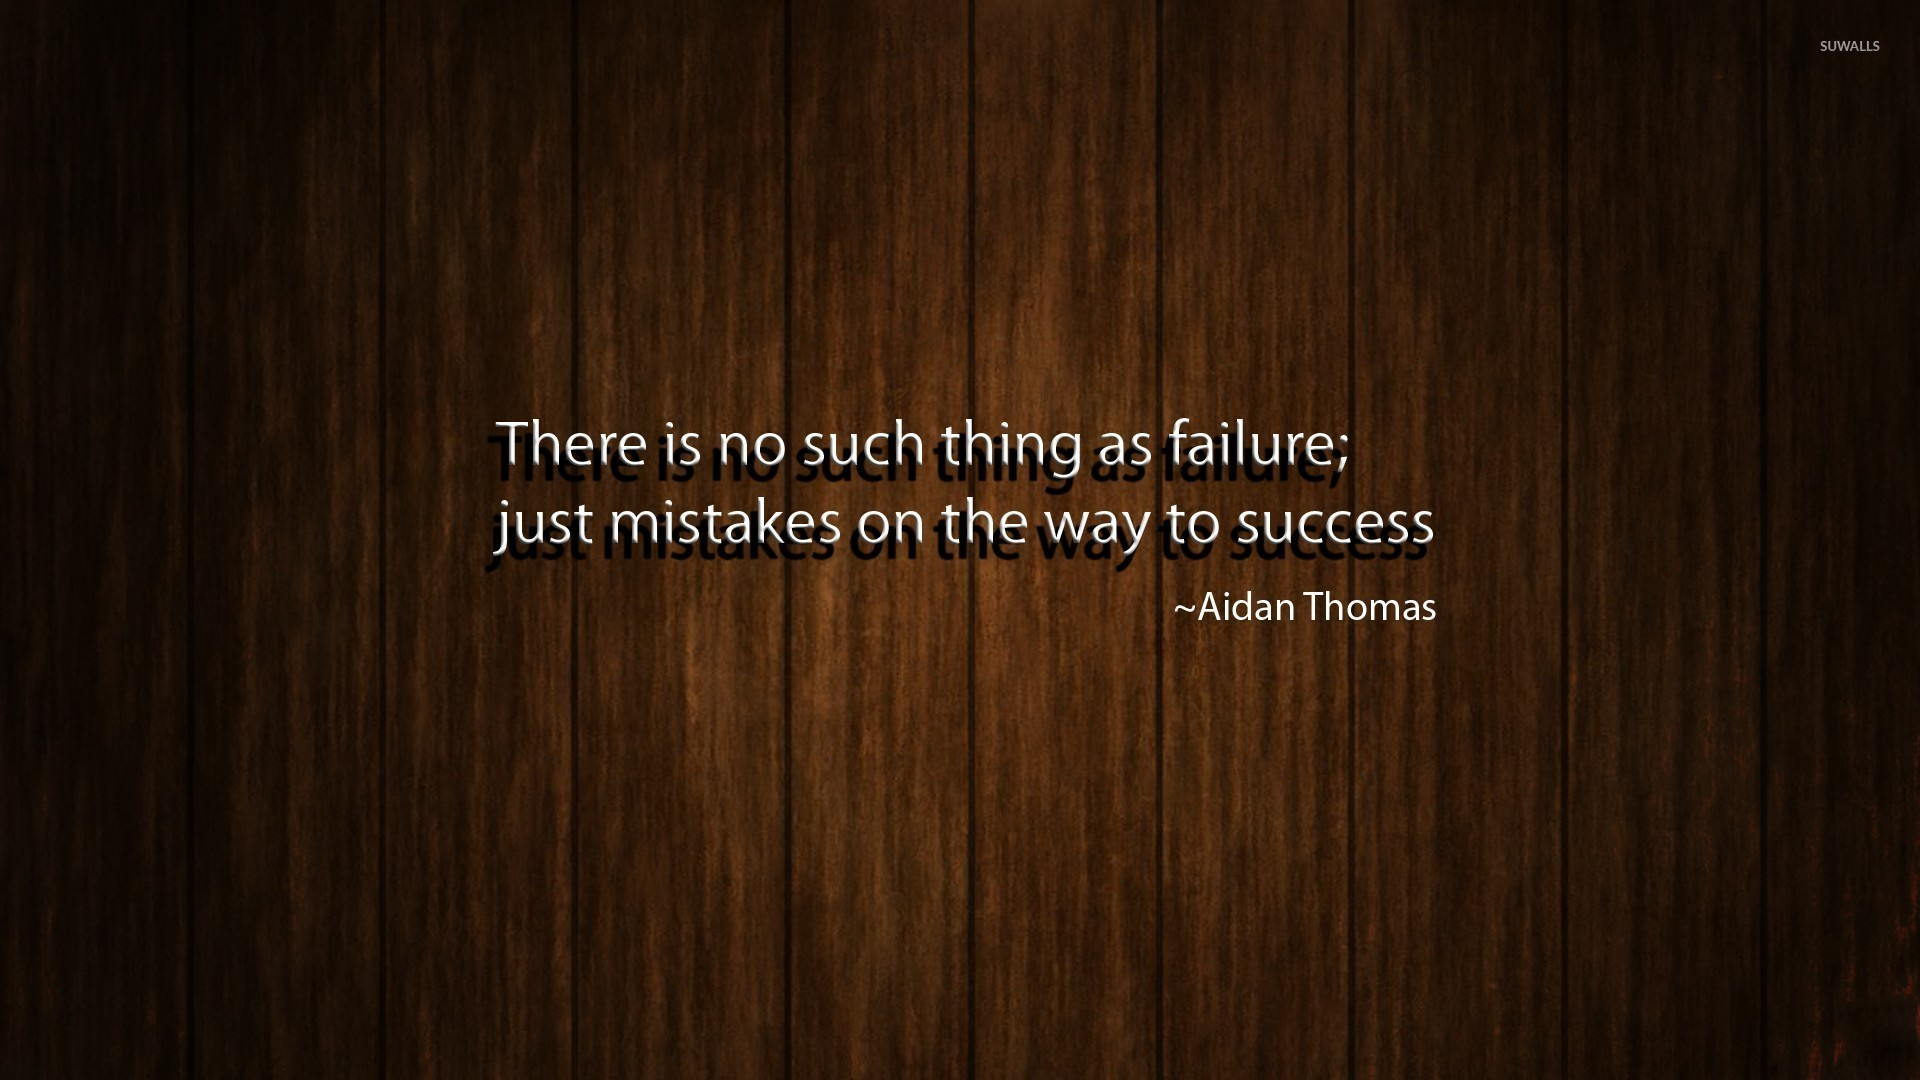 1920x1080 No failure, just mistakes on the way to success wallpaper